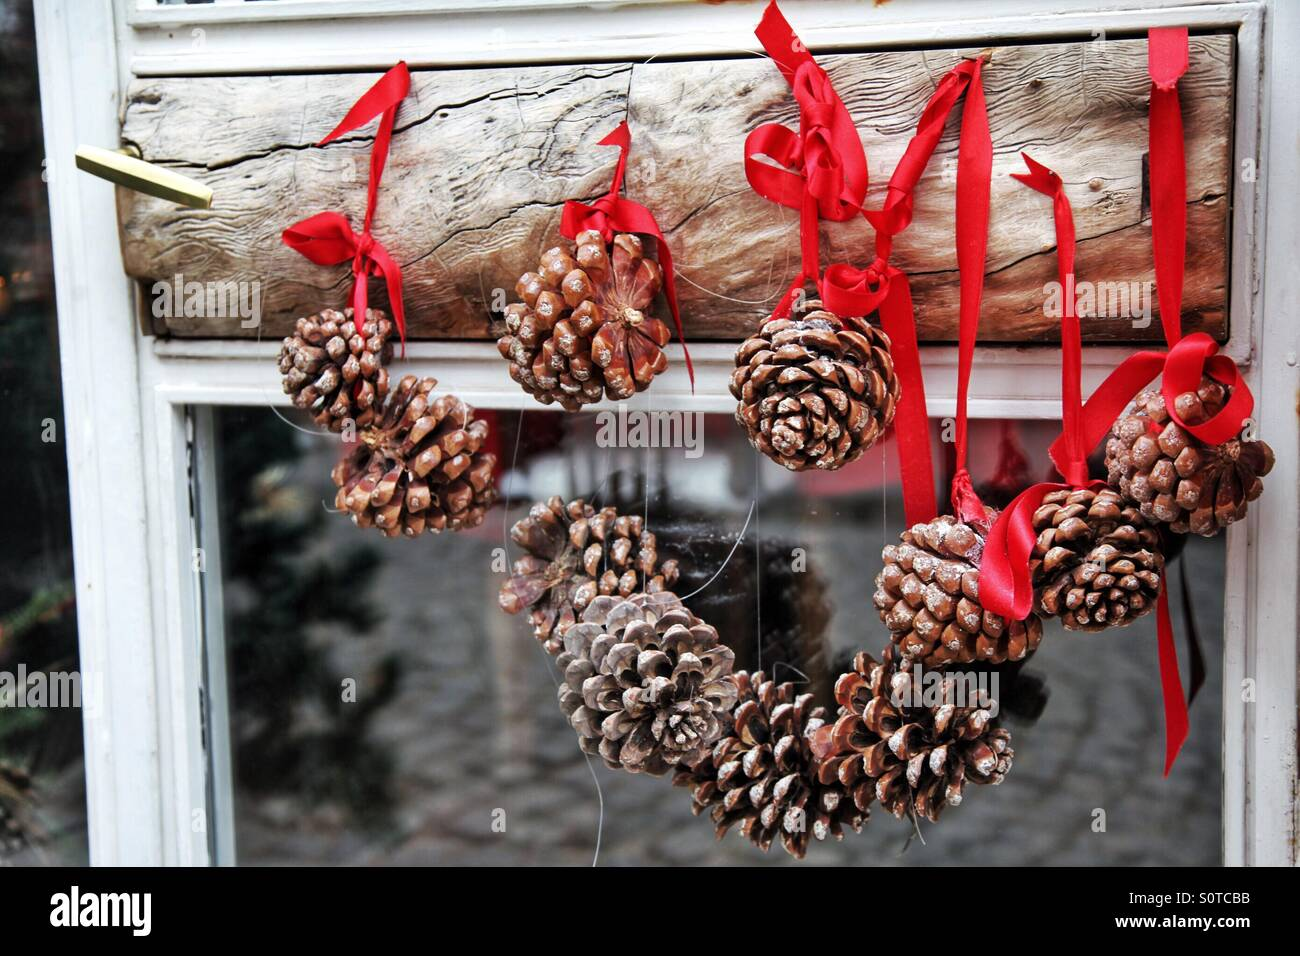 Cones are on the door with red ribbons - Stock Image